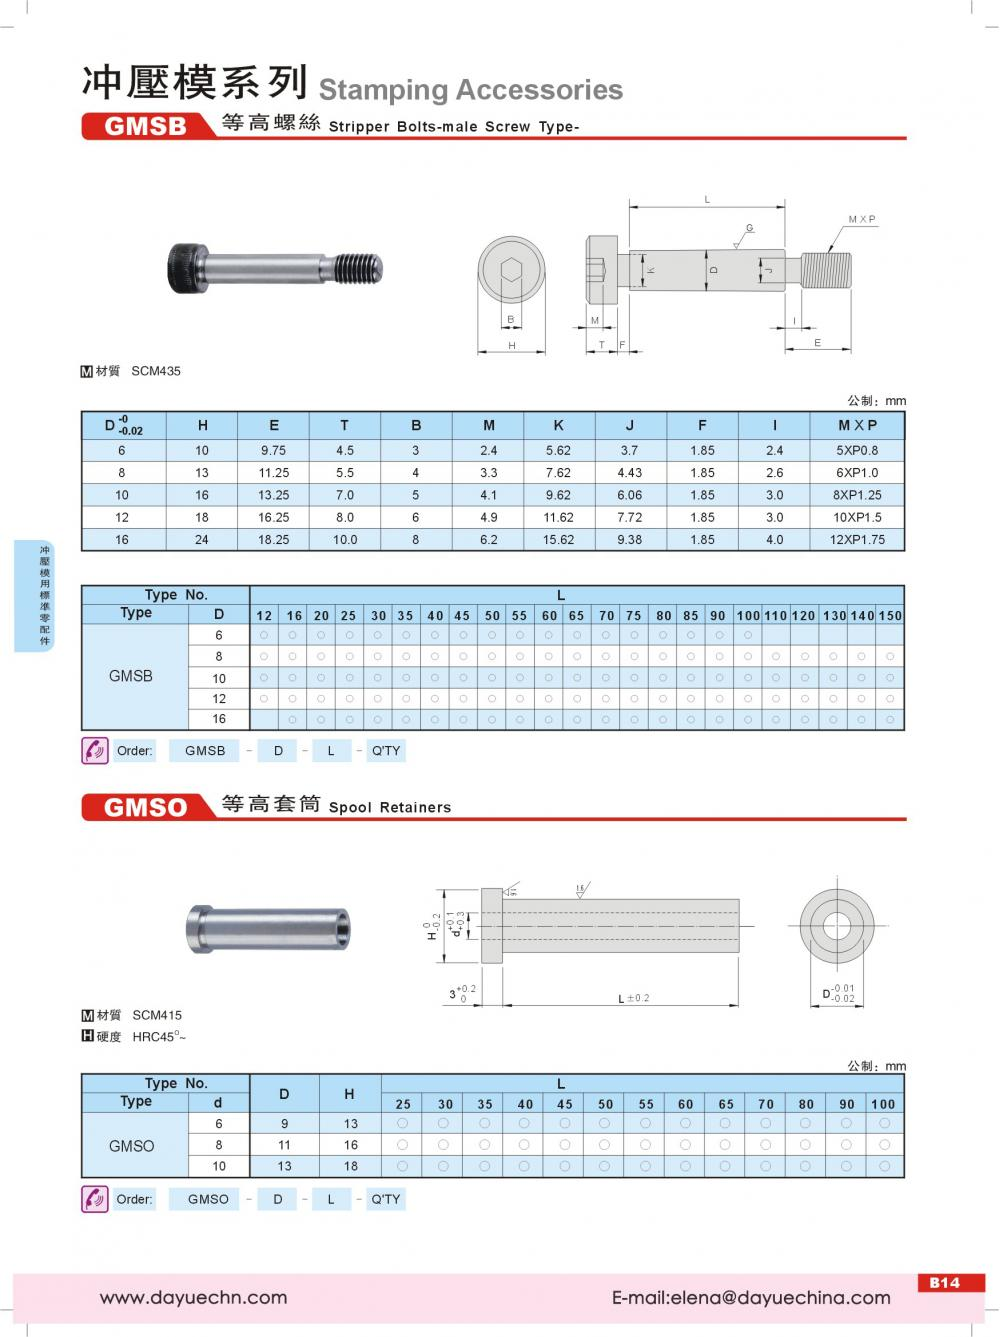 JIS Standard for Contour Screws for Stamping Dies